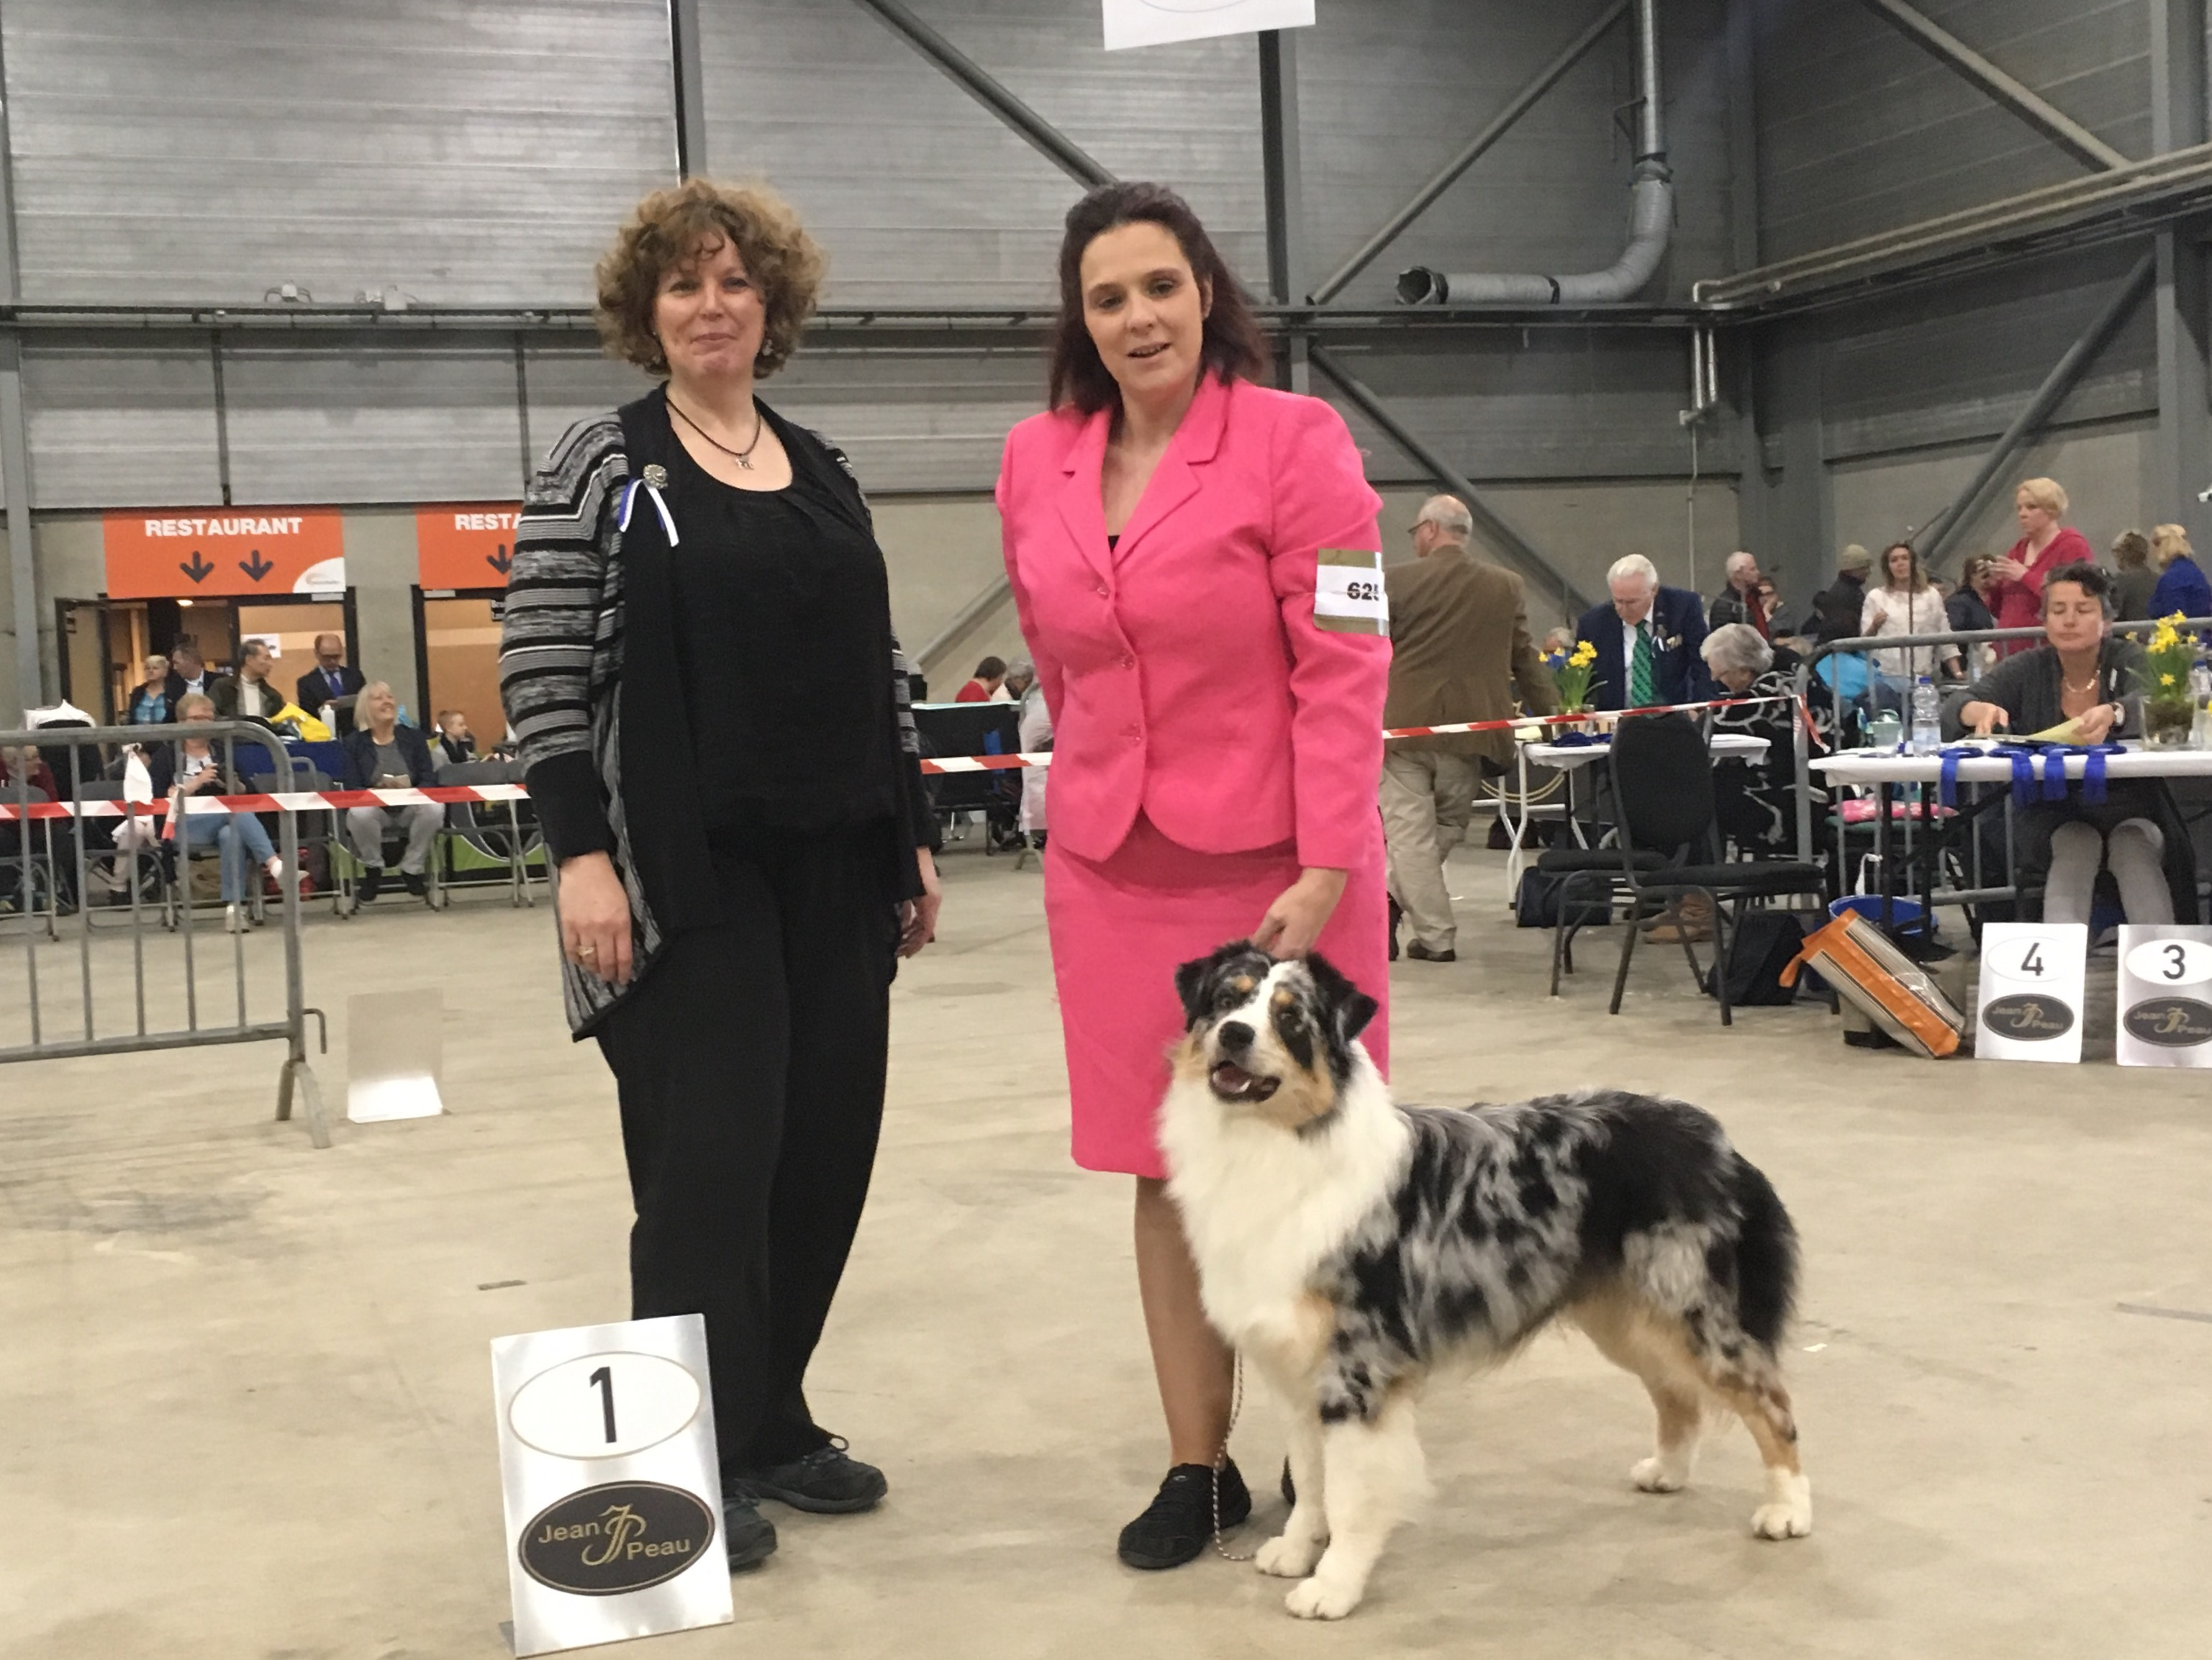 20170416 Dogshow0Goes day2 Charm BOB